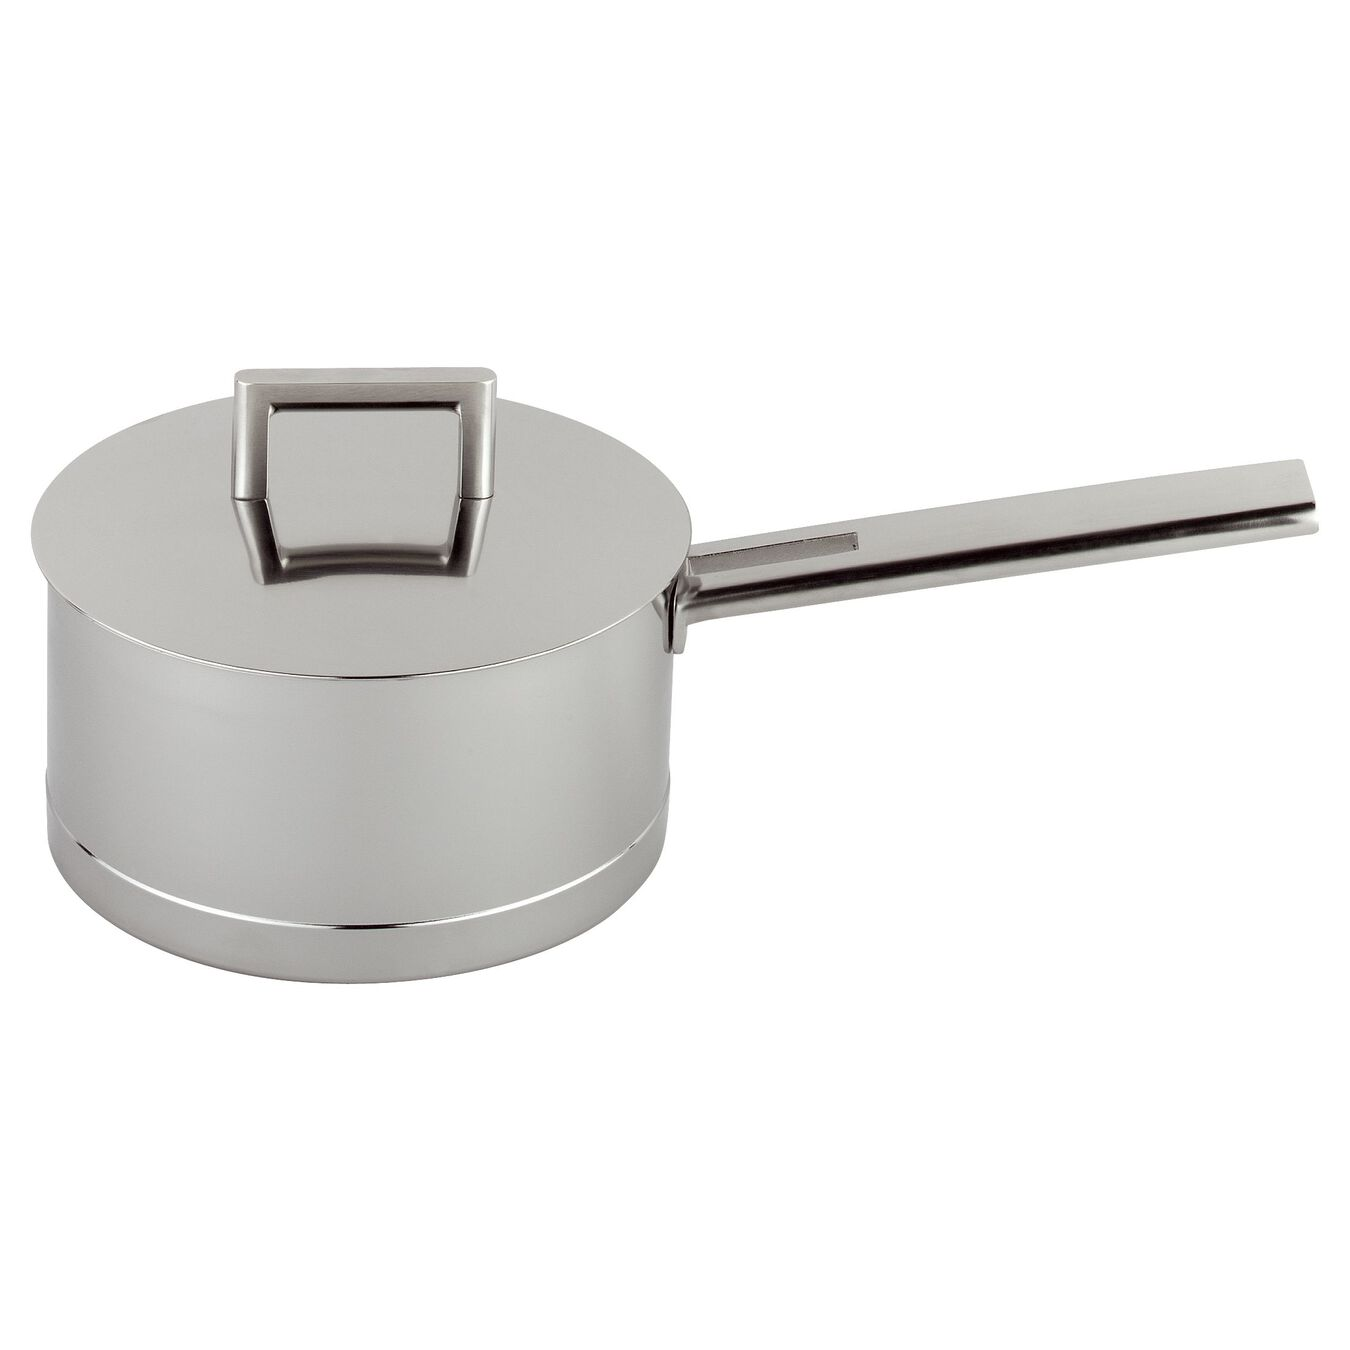 1.6-qt Stainless Steel Saucepan,,large 1